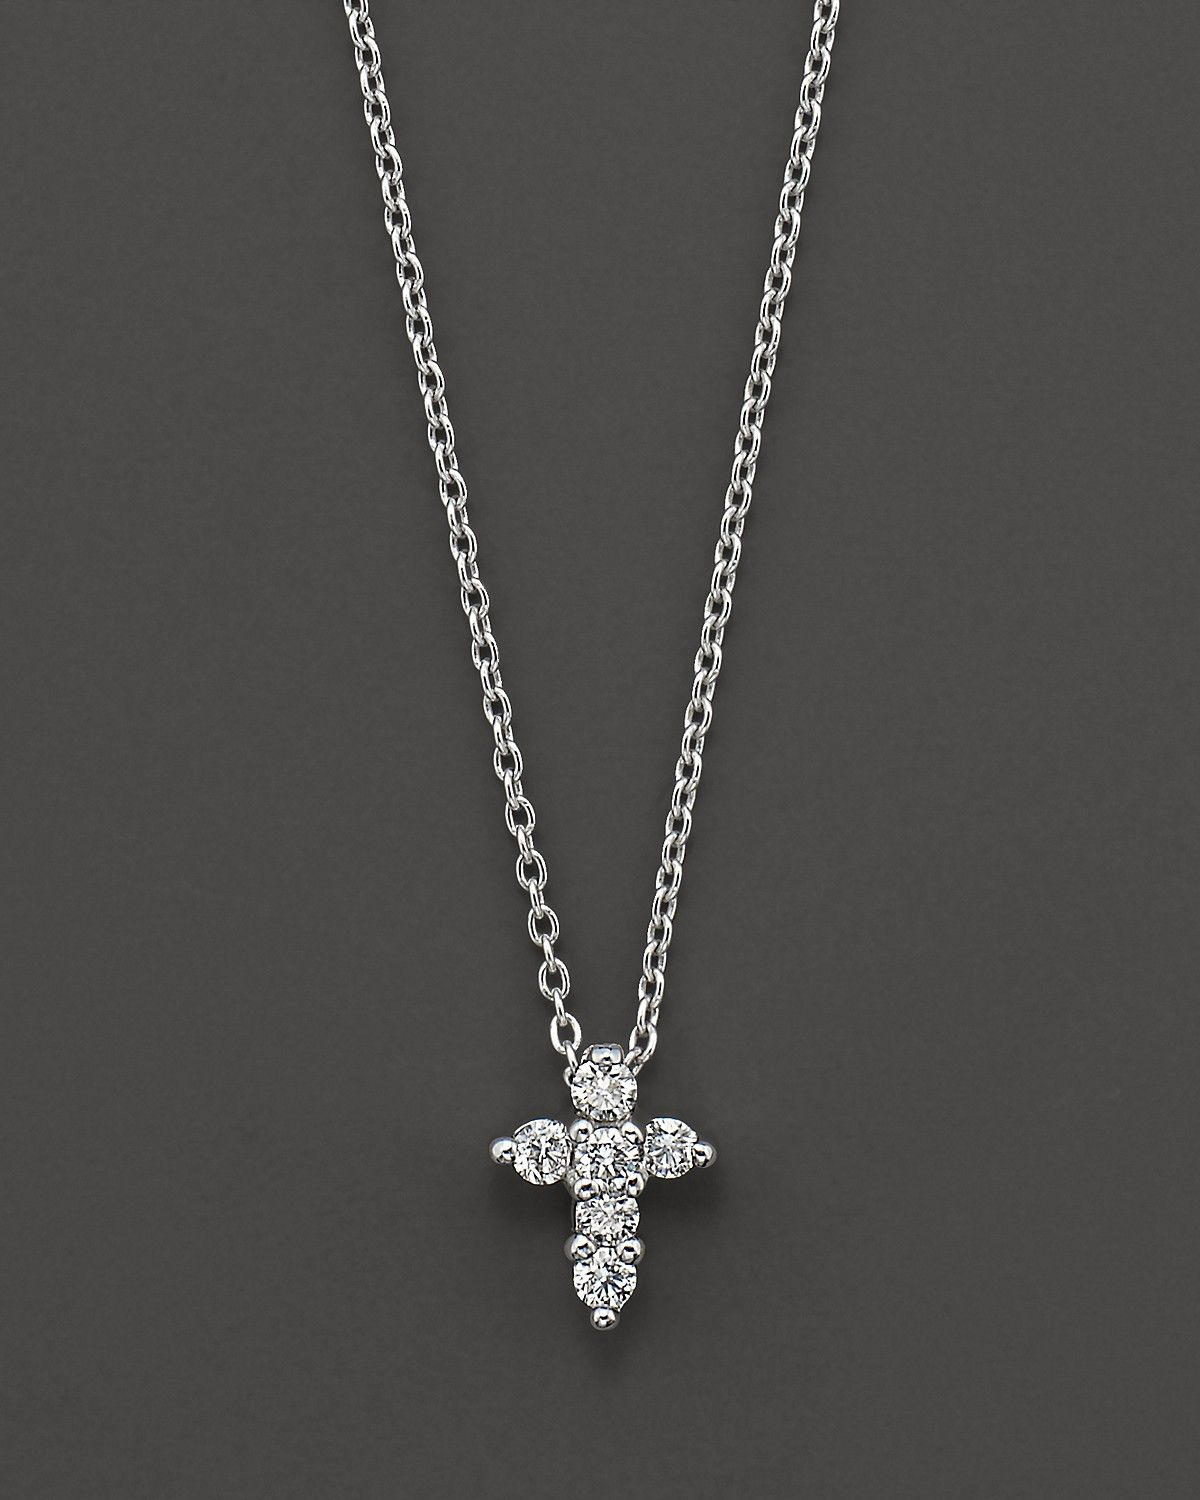 370be82cb882a 18K White Gold Small Cross Pendant Necklace with Diamonds, 16 in ...